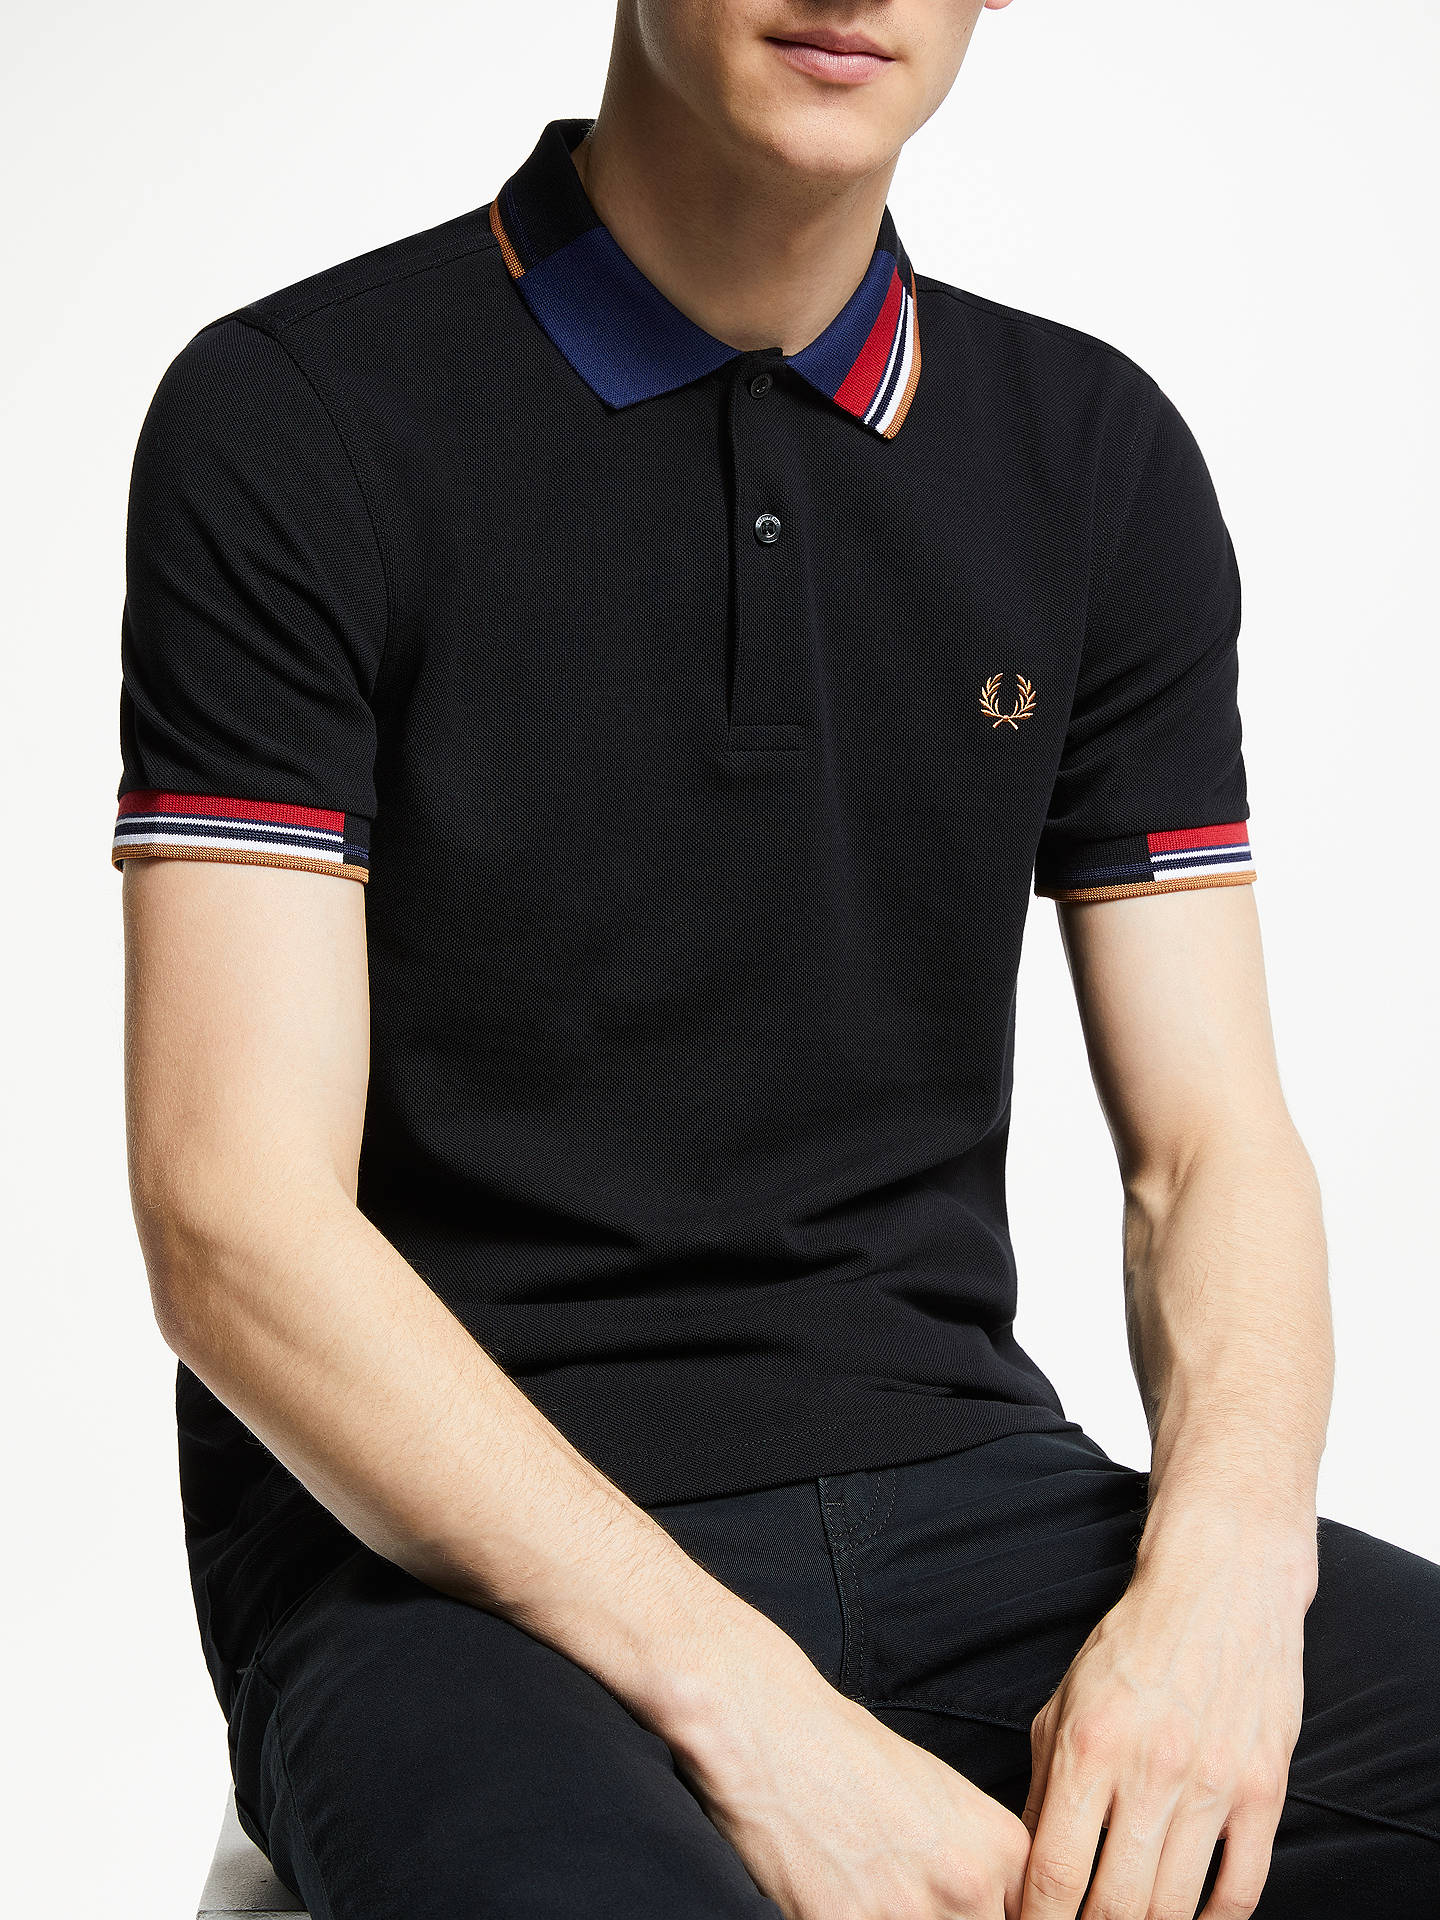 2be6844d Buy Fred Perry Abstract Collar Pique Polo Shirt, Black, XL Online at  johnlewis.